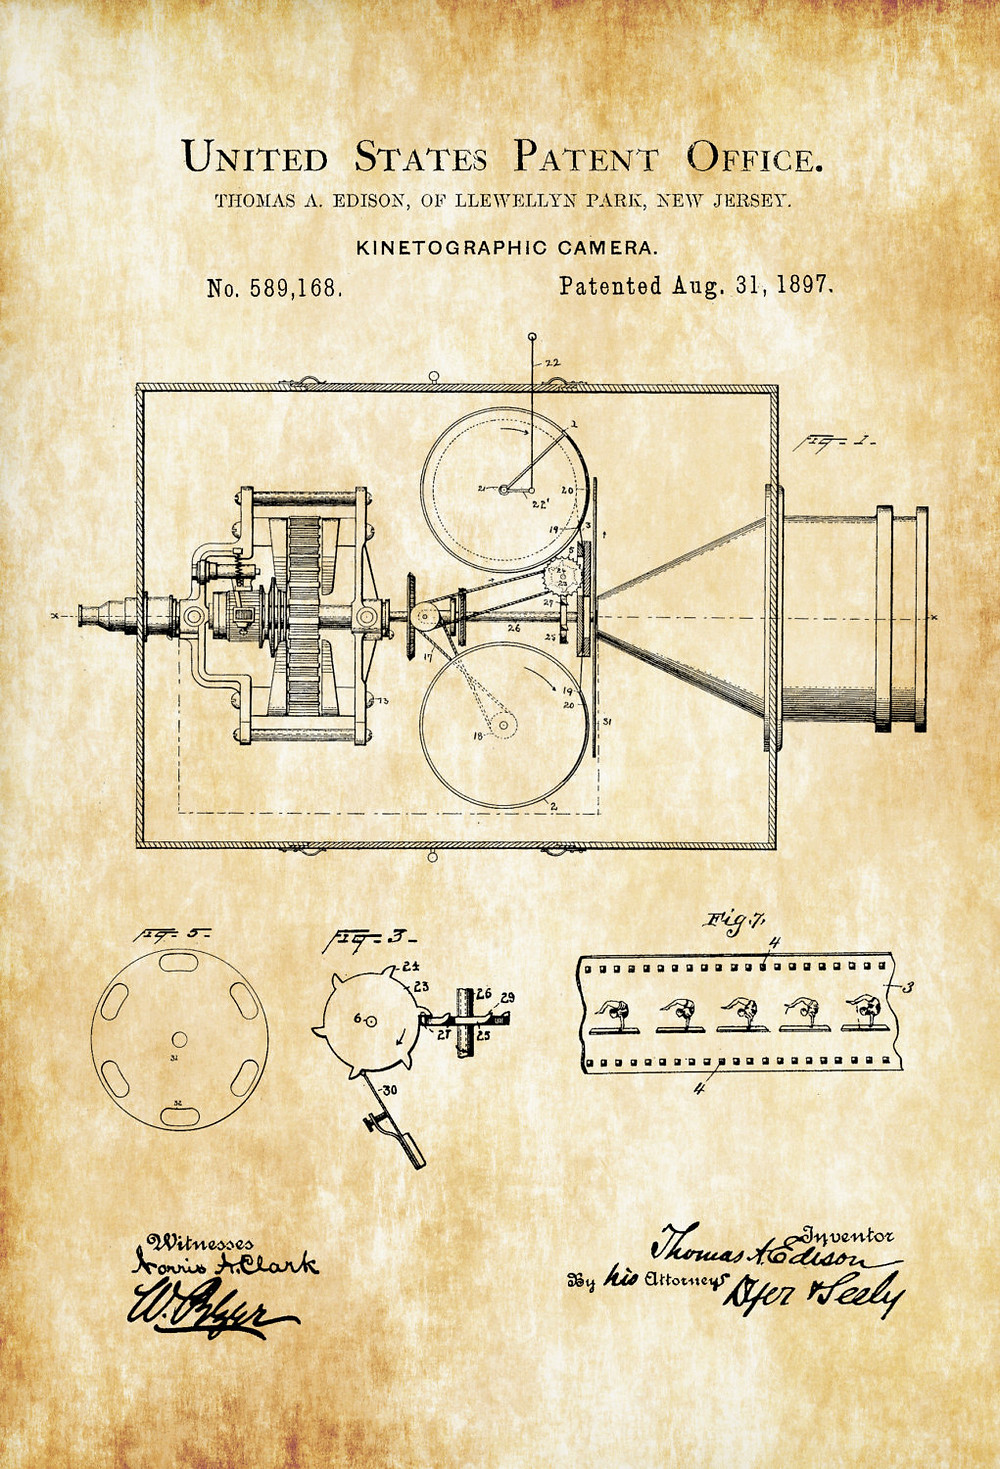 A drawing of Edison's kinetographic camera.